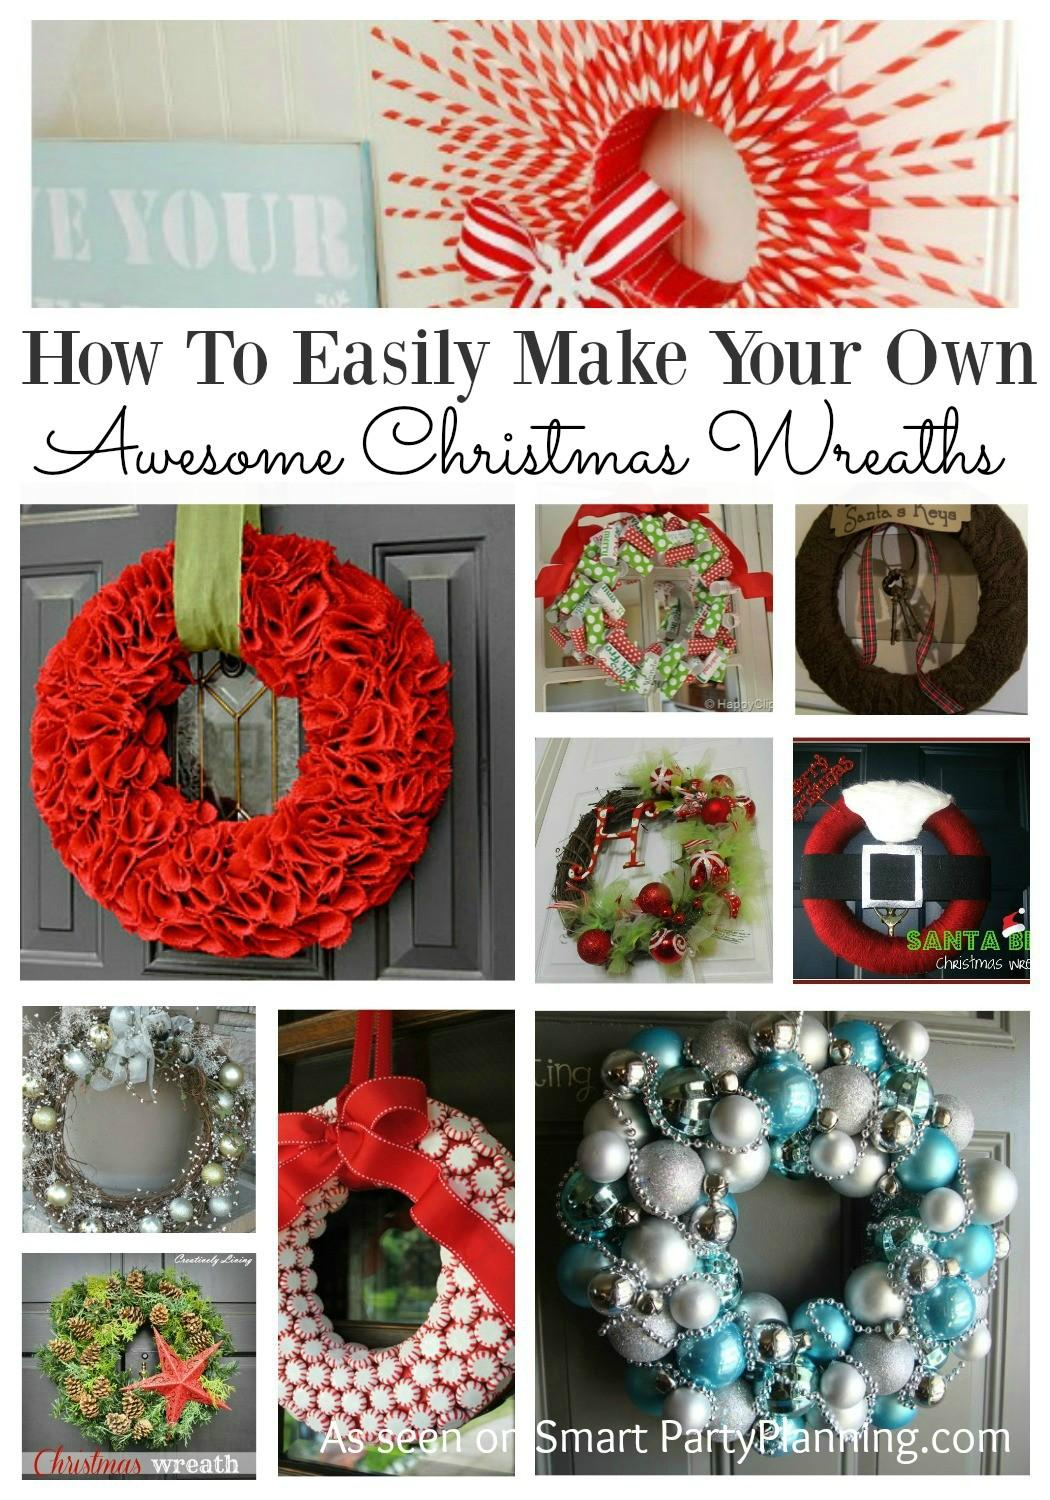 Easily Make Your Own Awesome Christmas Wreaths